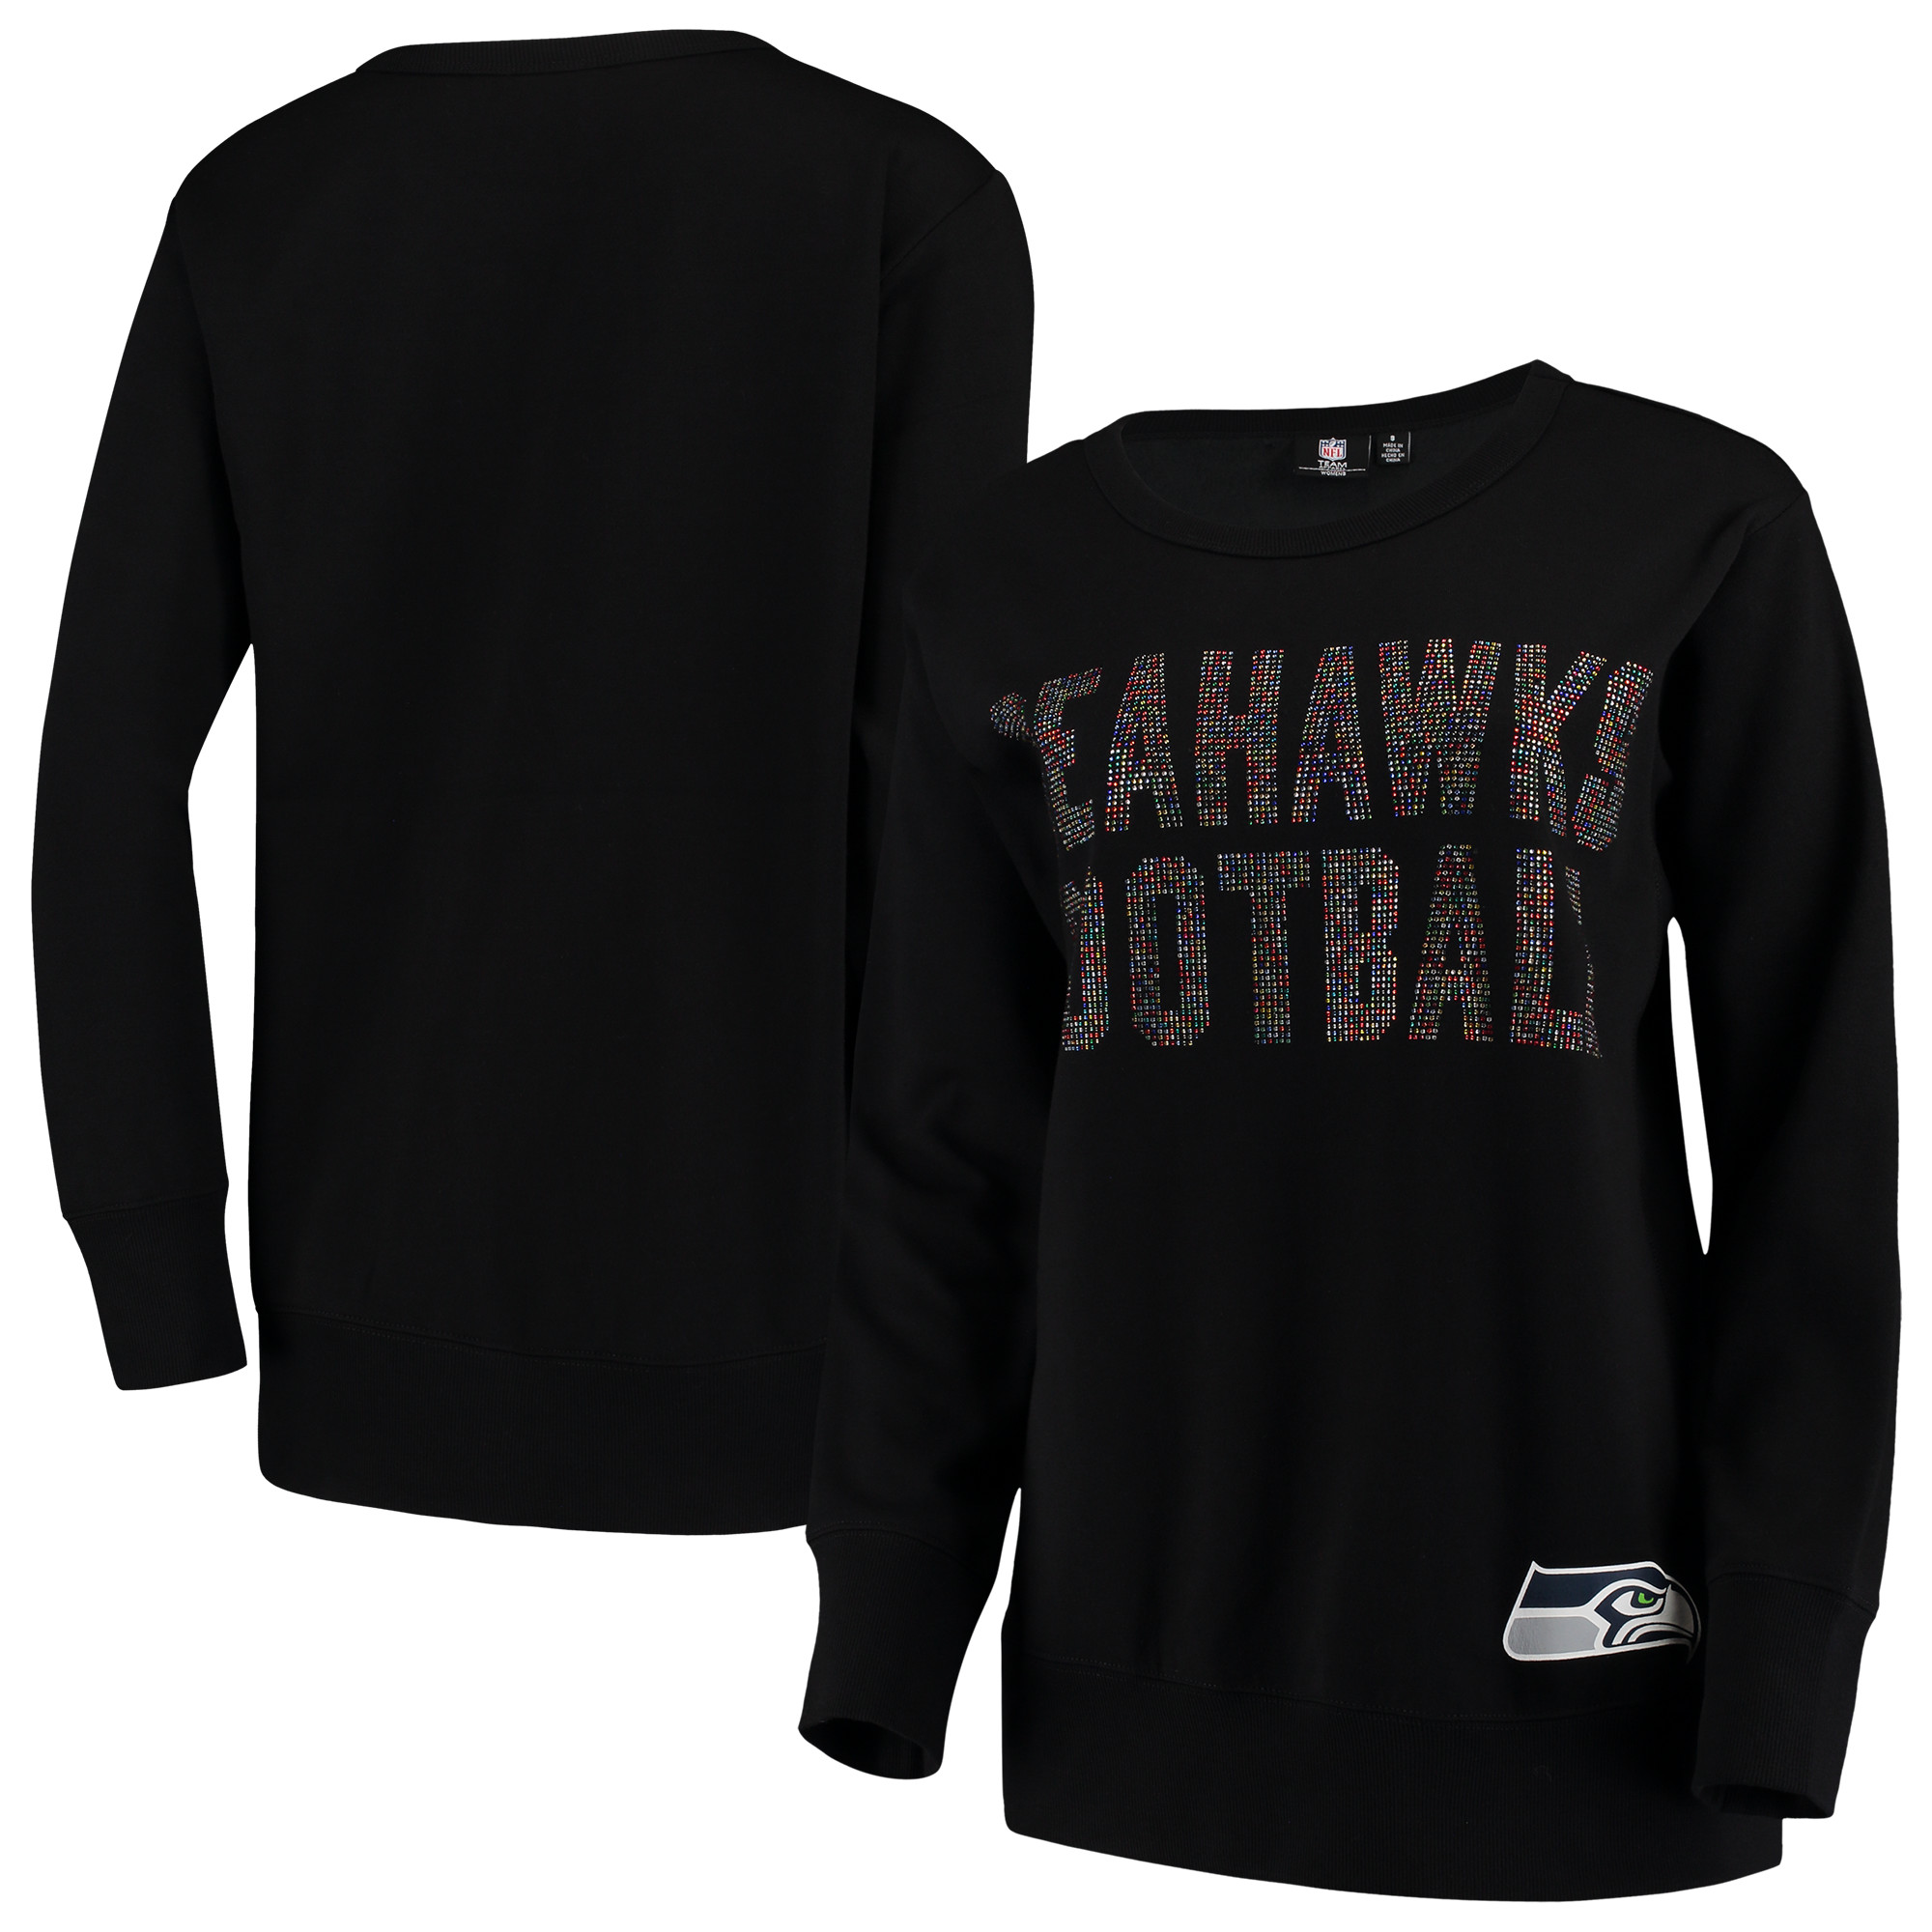 Seattle Seahawks G-III 4Her by Carl Banks Women's Superstar Pullover Sweatshirt - Black